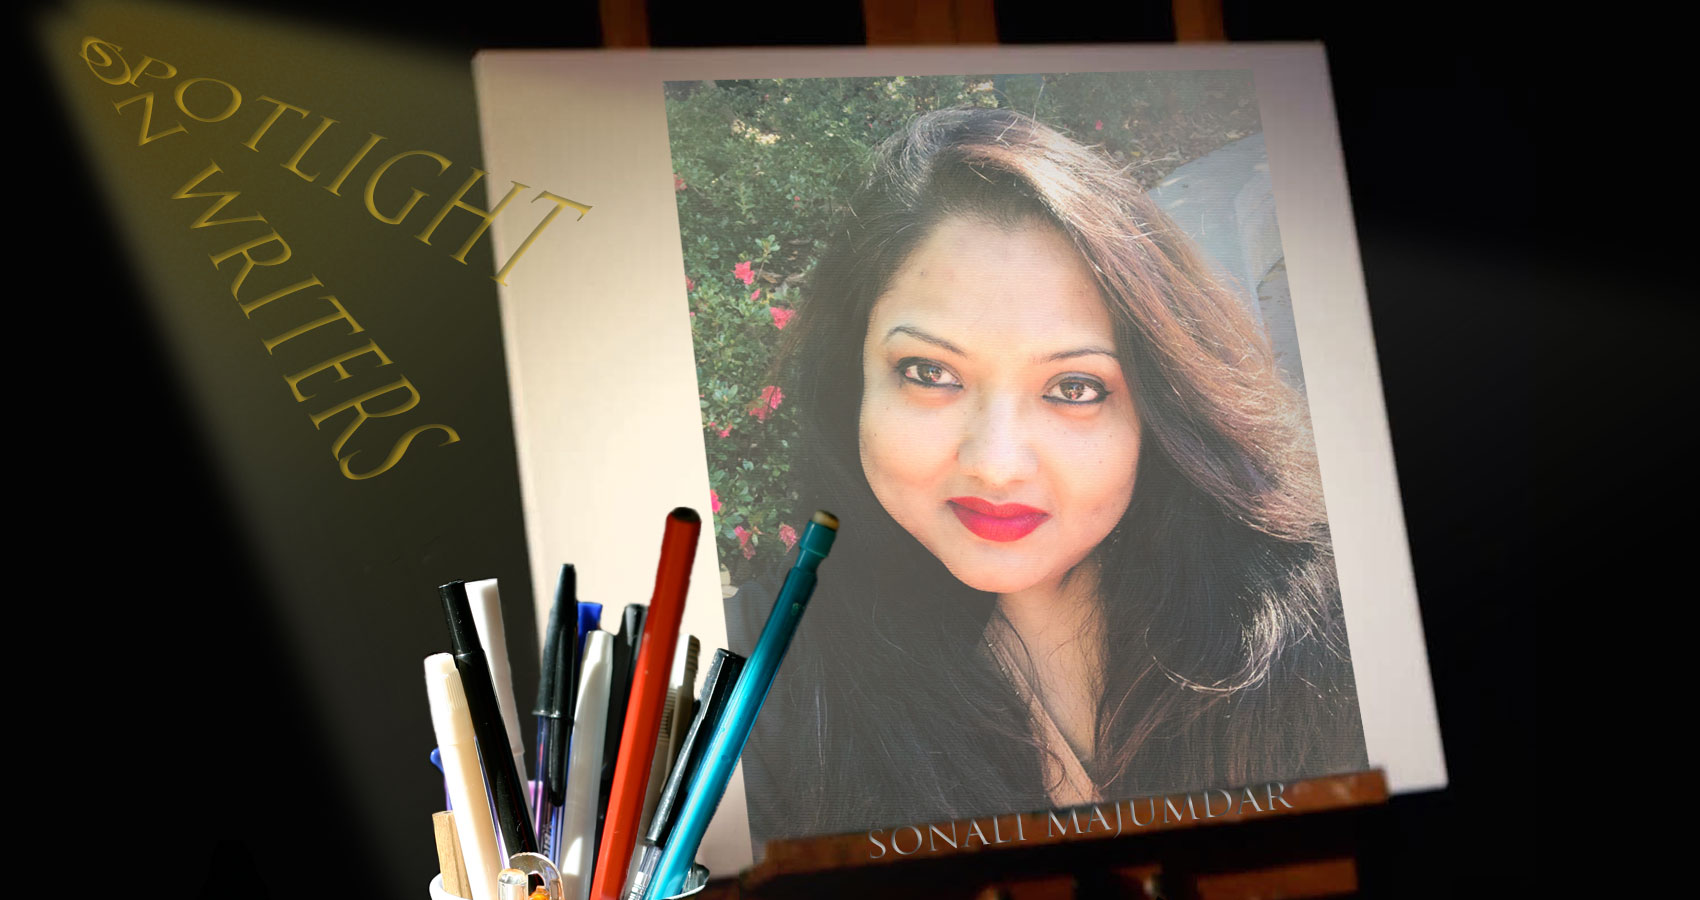 Spotlight On Writers - Sonali Majumdar, interview at Spillwords.com